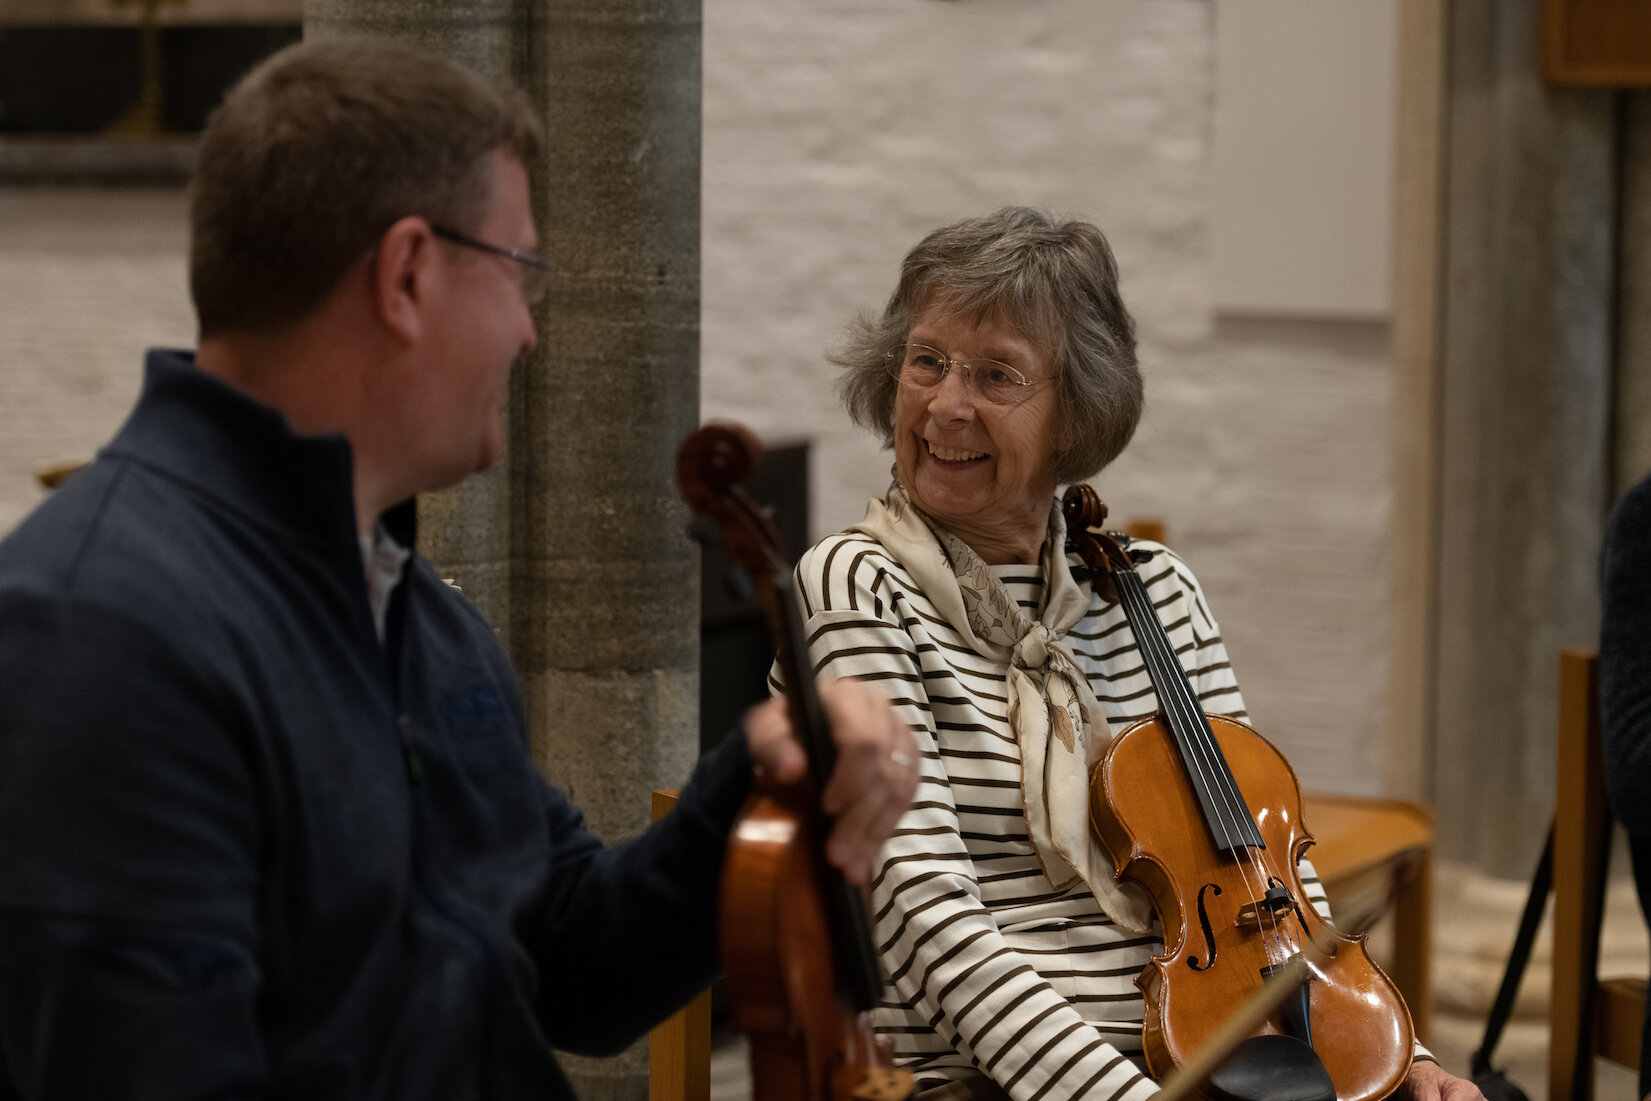 We are a high-standard amateur string orchestra in north London